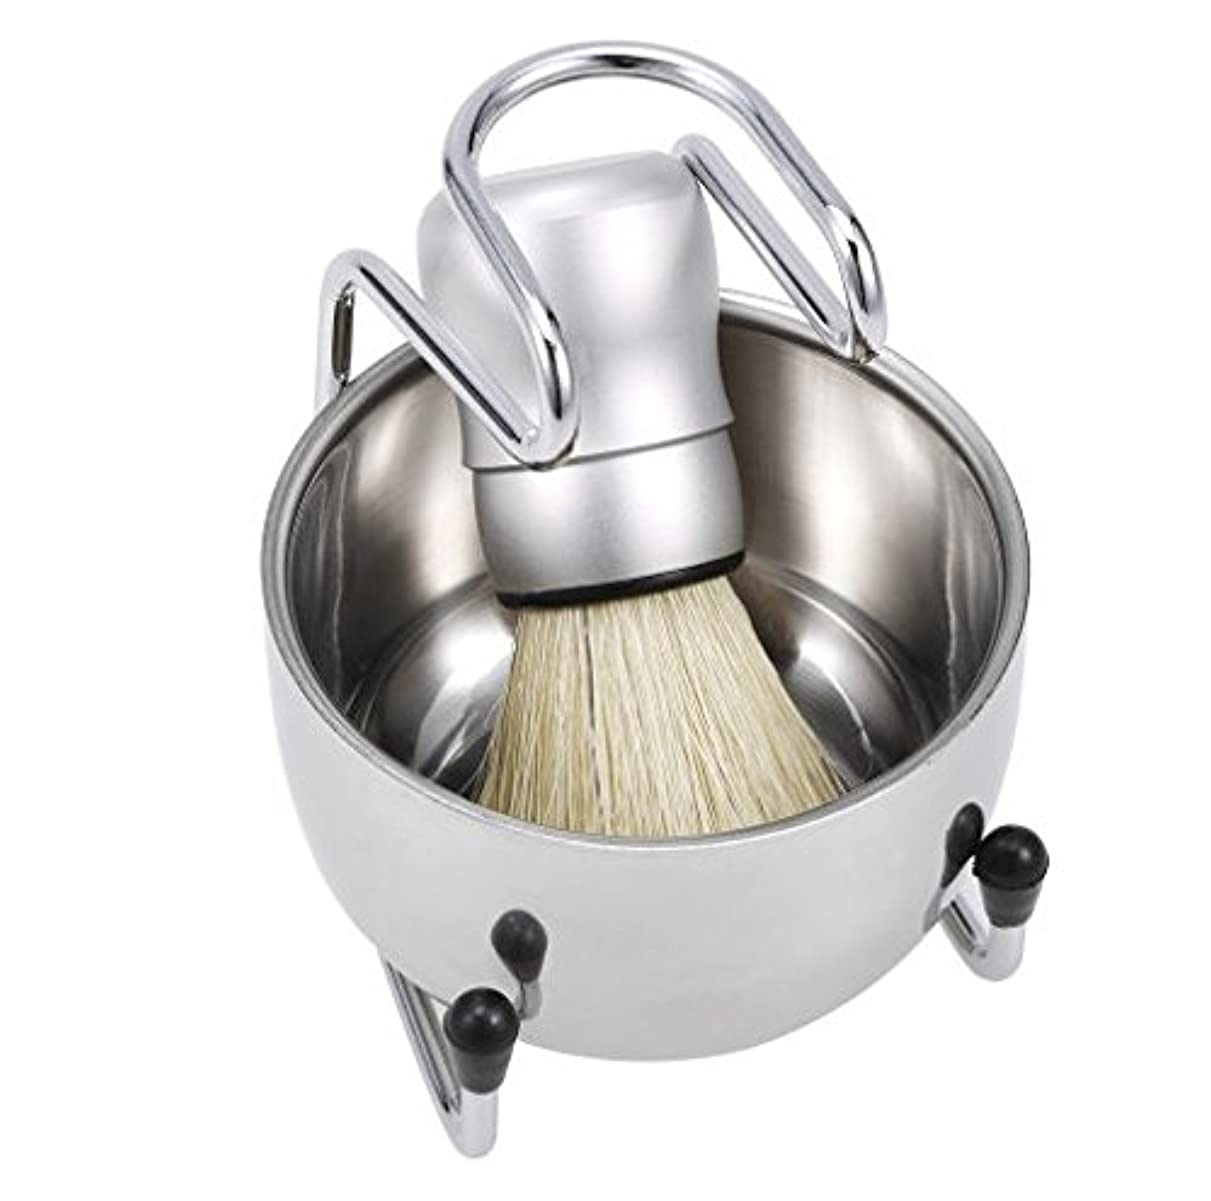 同性愛者代数的退却3 in 1 Men's Shaving Tools Set Well Polished Shaving Brush Soap Bowl Stand Holder Badger Hair Male Face Cleaning